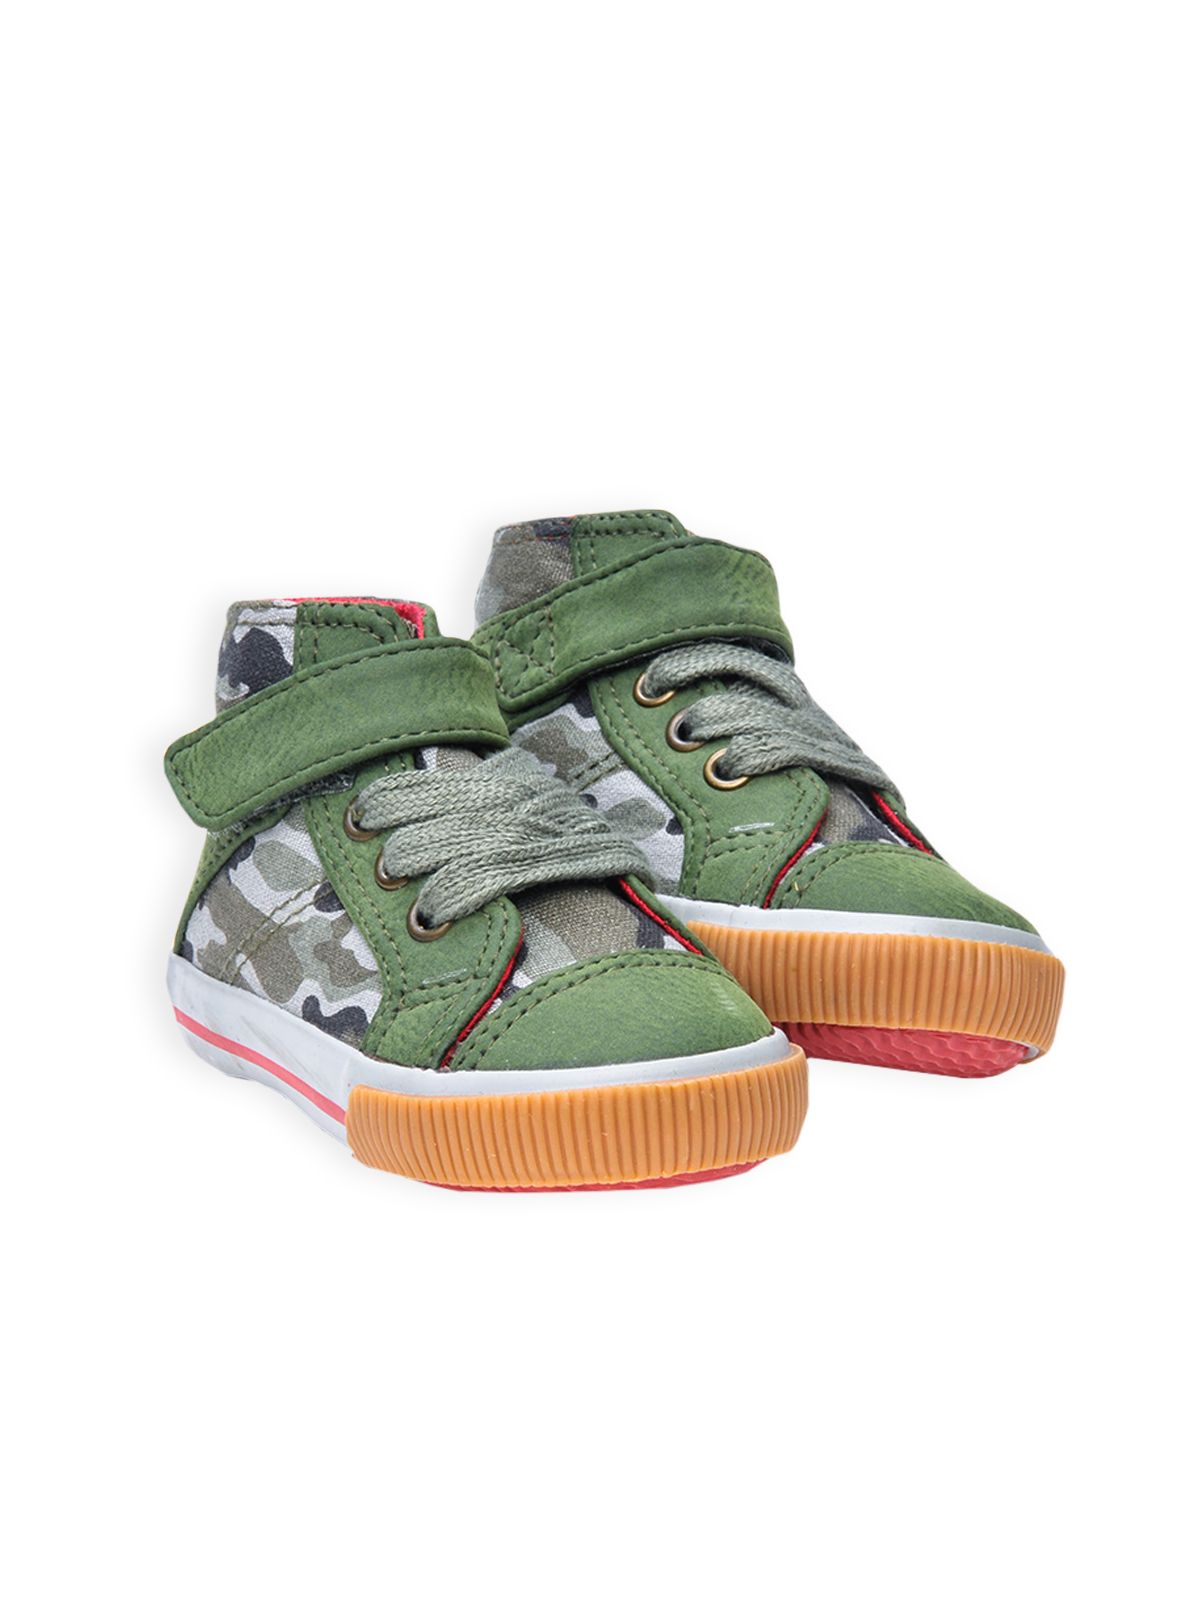 Boys army camo hi top